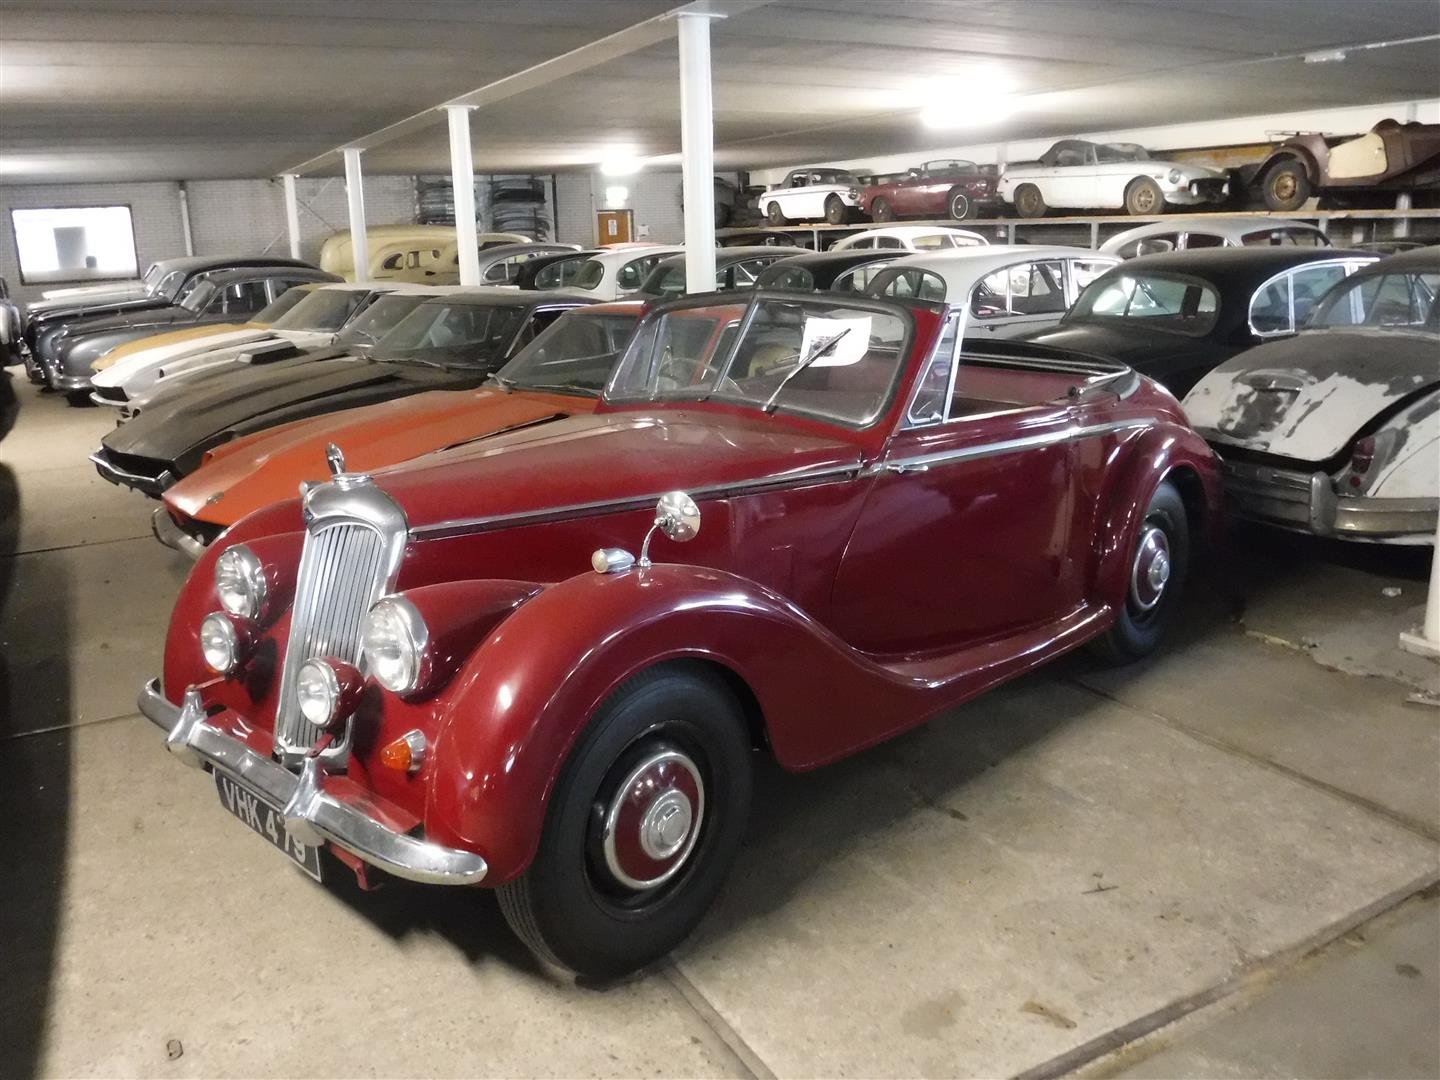 1952 Riley RMD RHD for sale For Sale (picture 1 of 6)